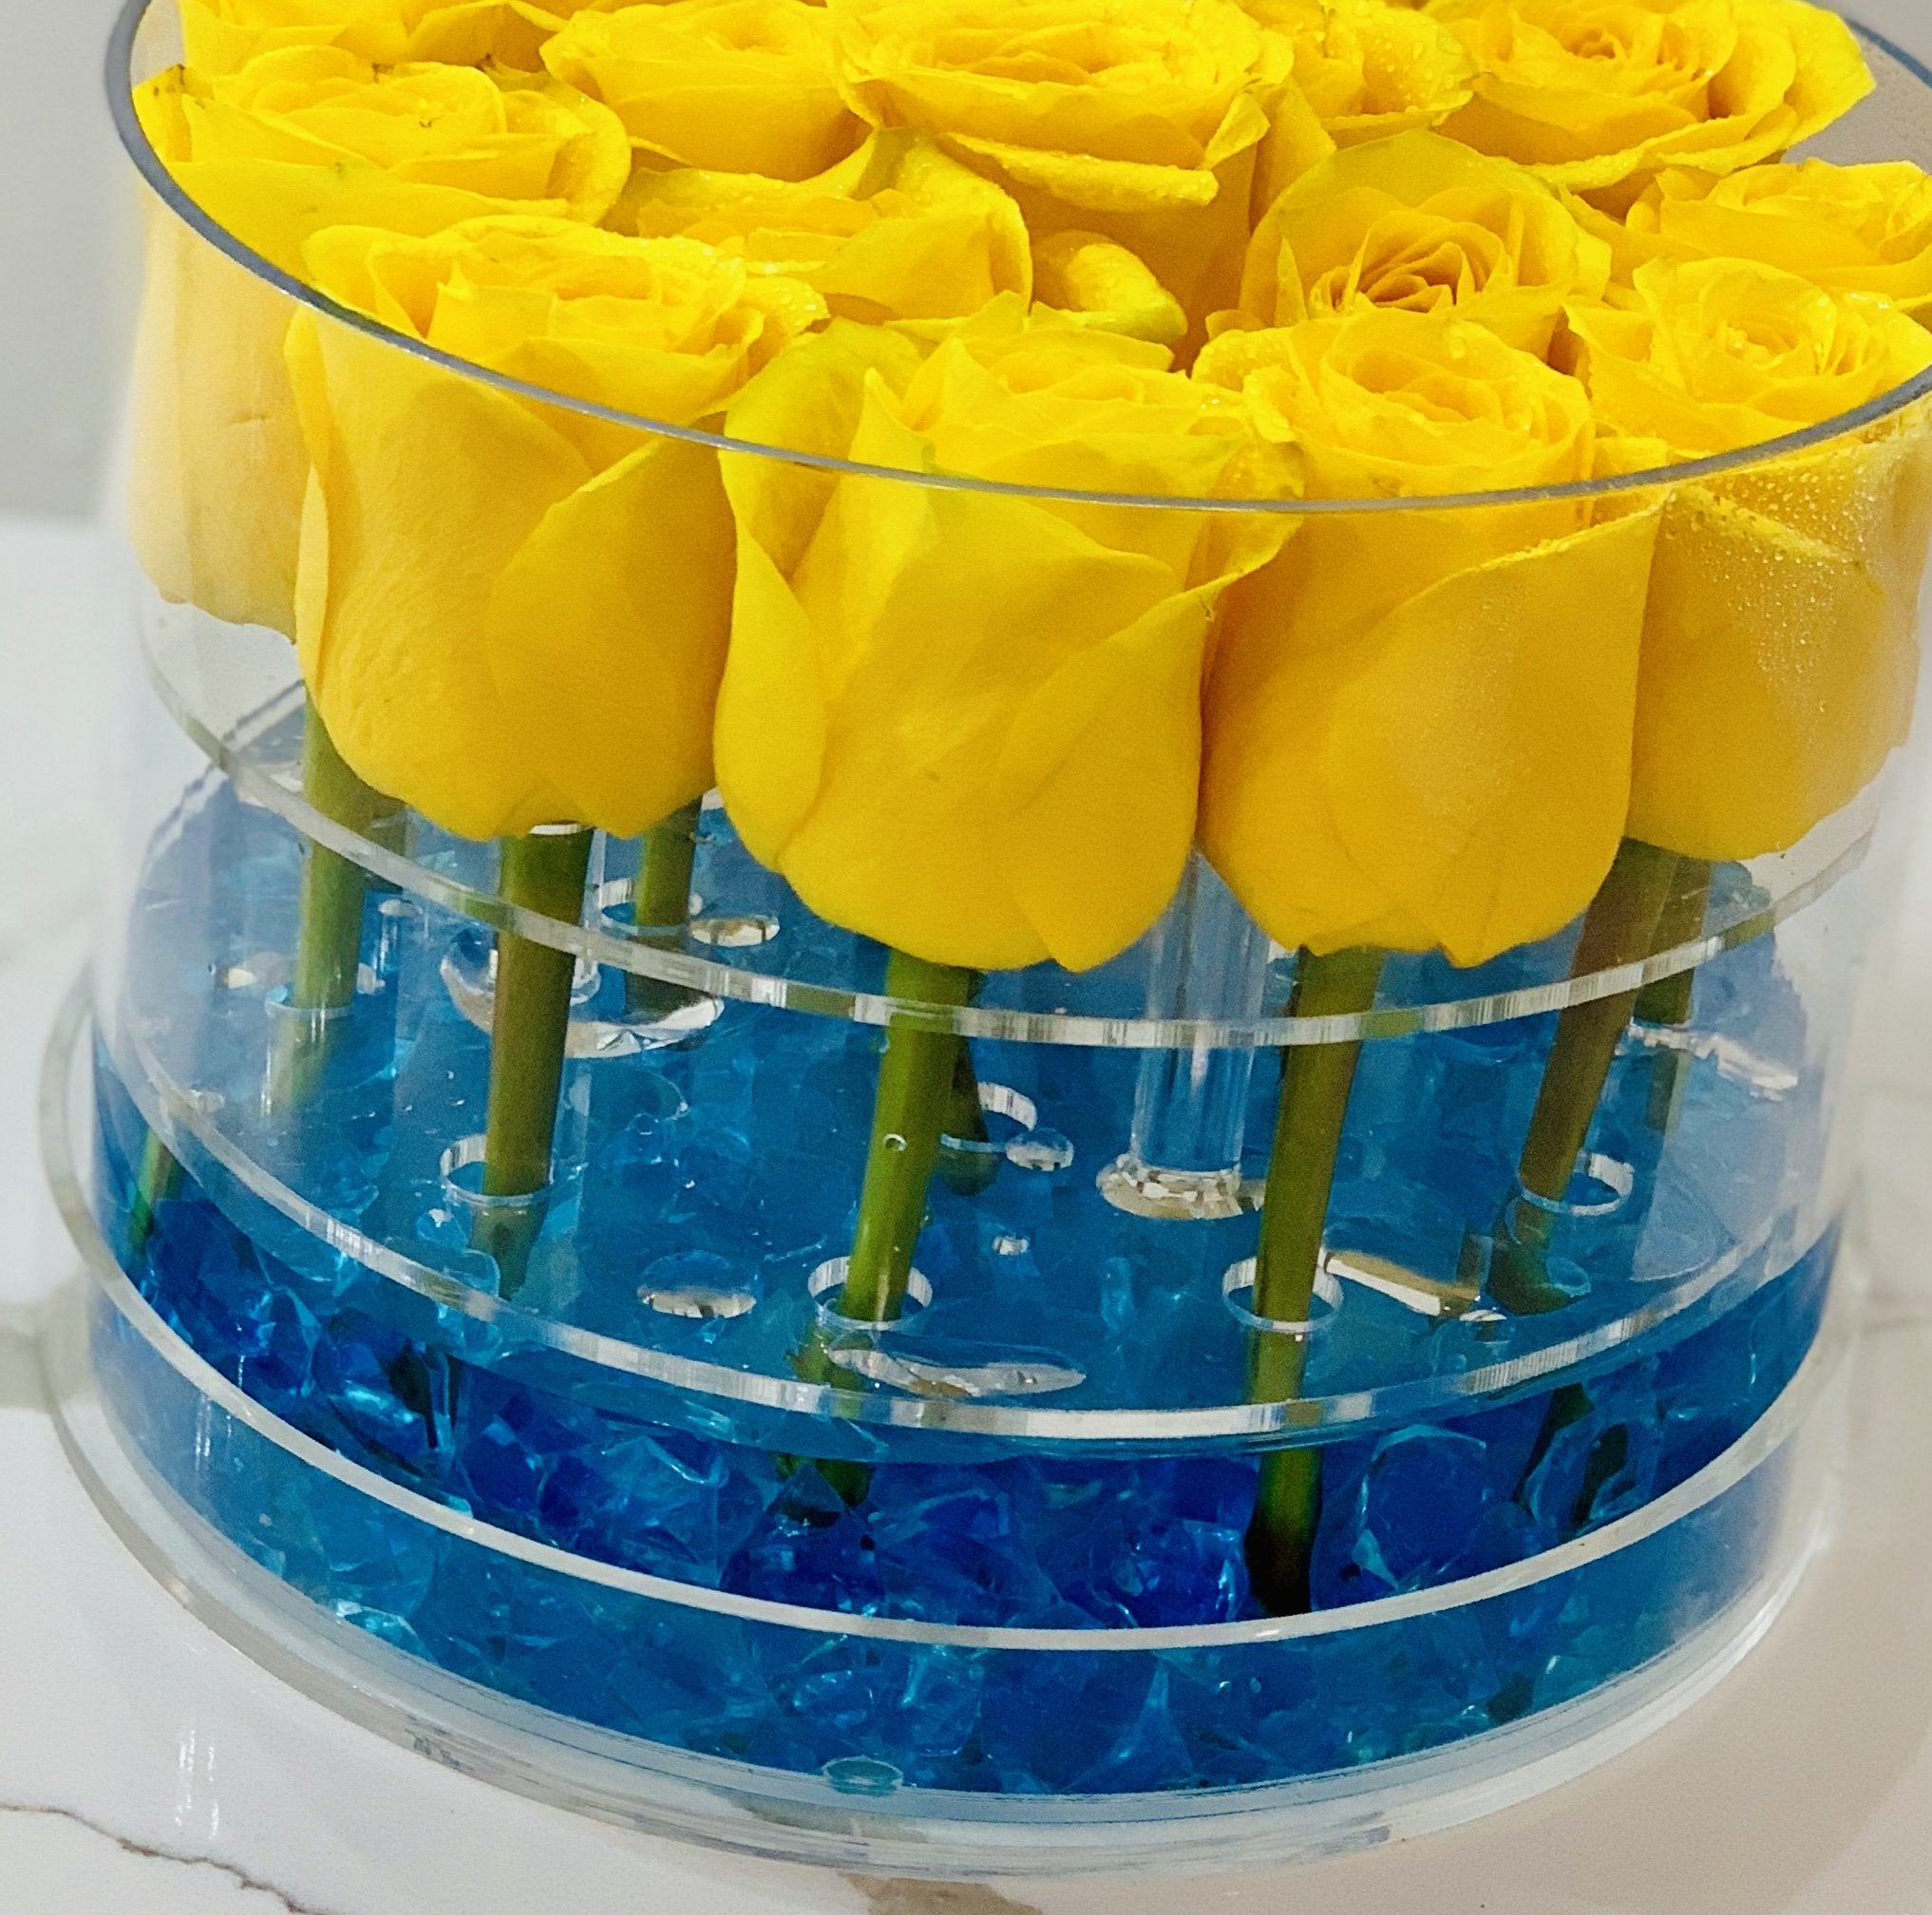 Modern Rose Box with Preserved long last lasting roses that last for years with yellow Roses